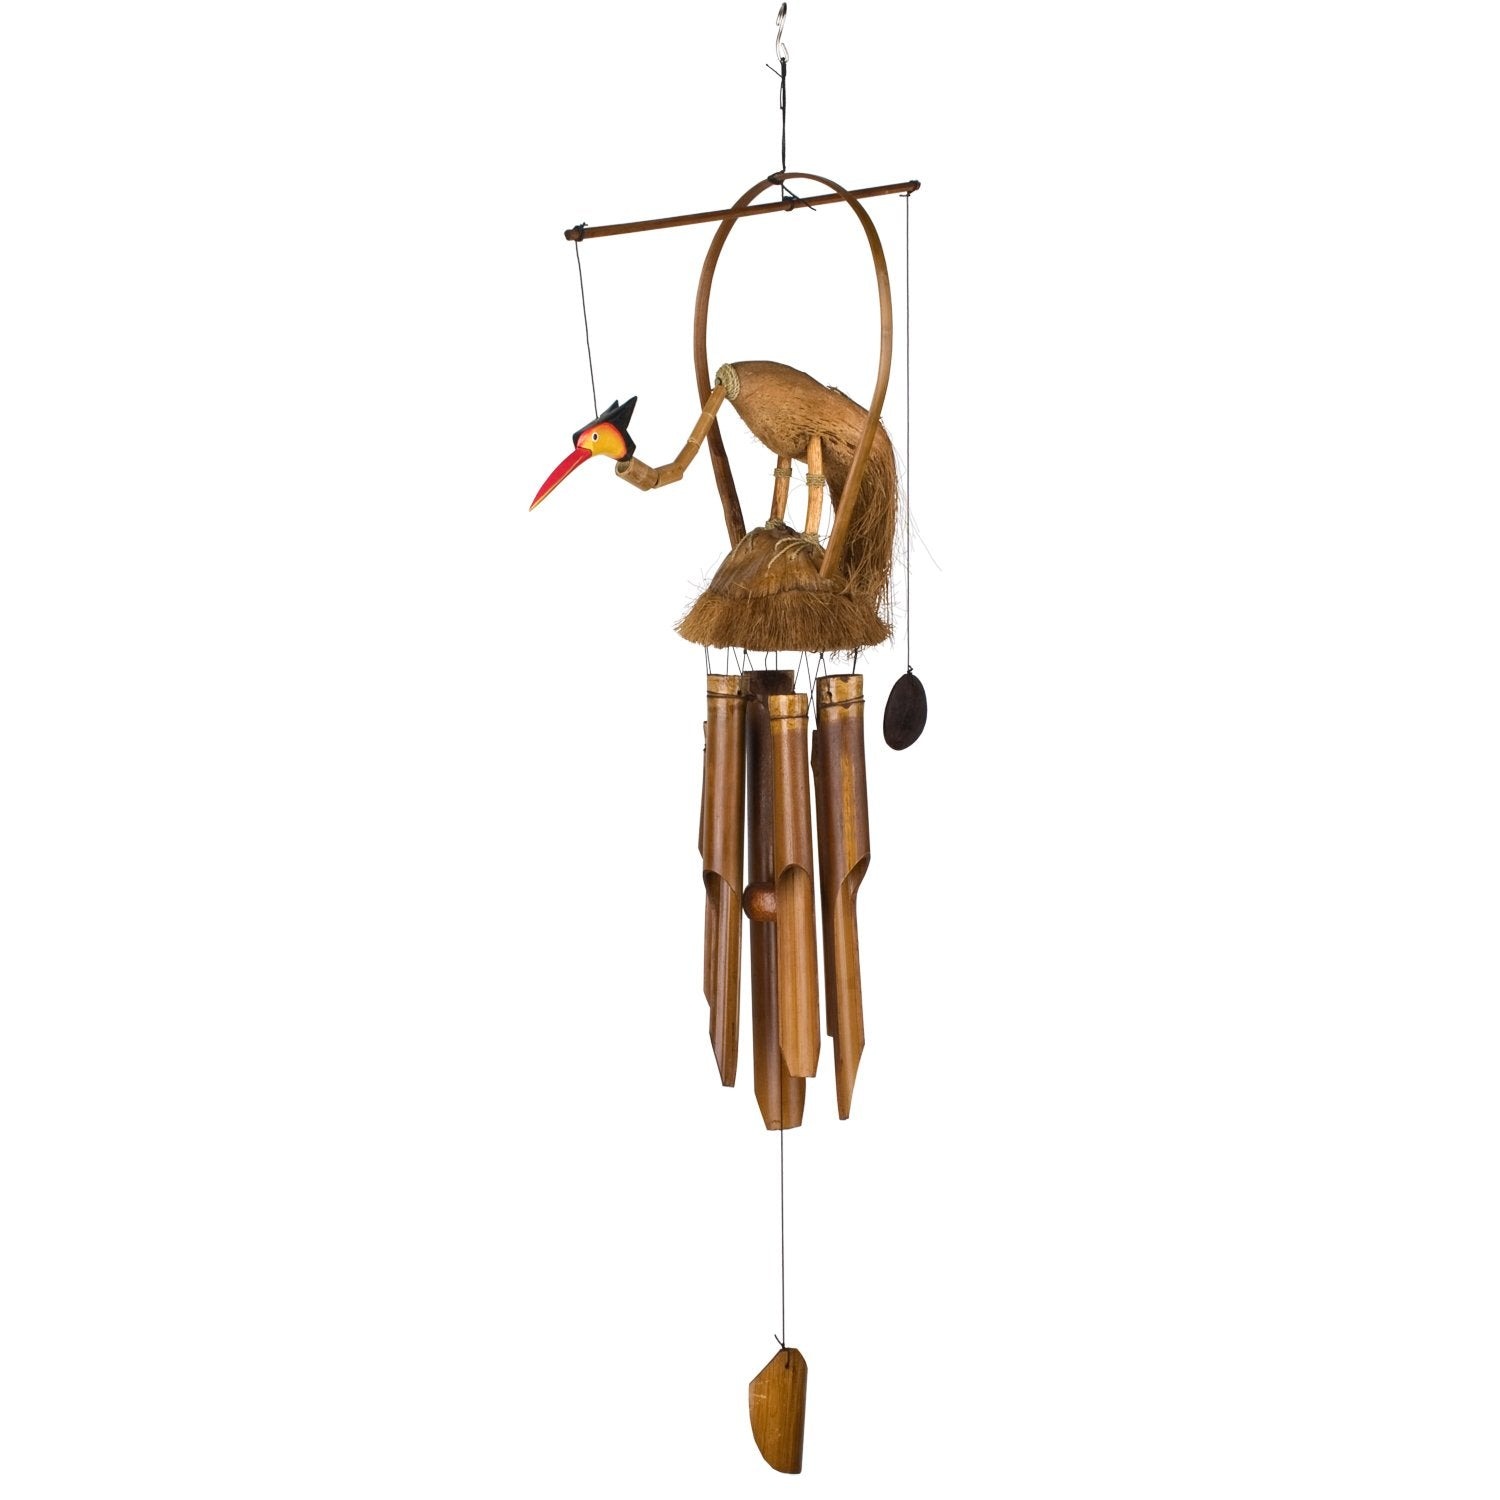 Gilbert Gooney Bamboo Chime full product image